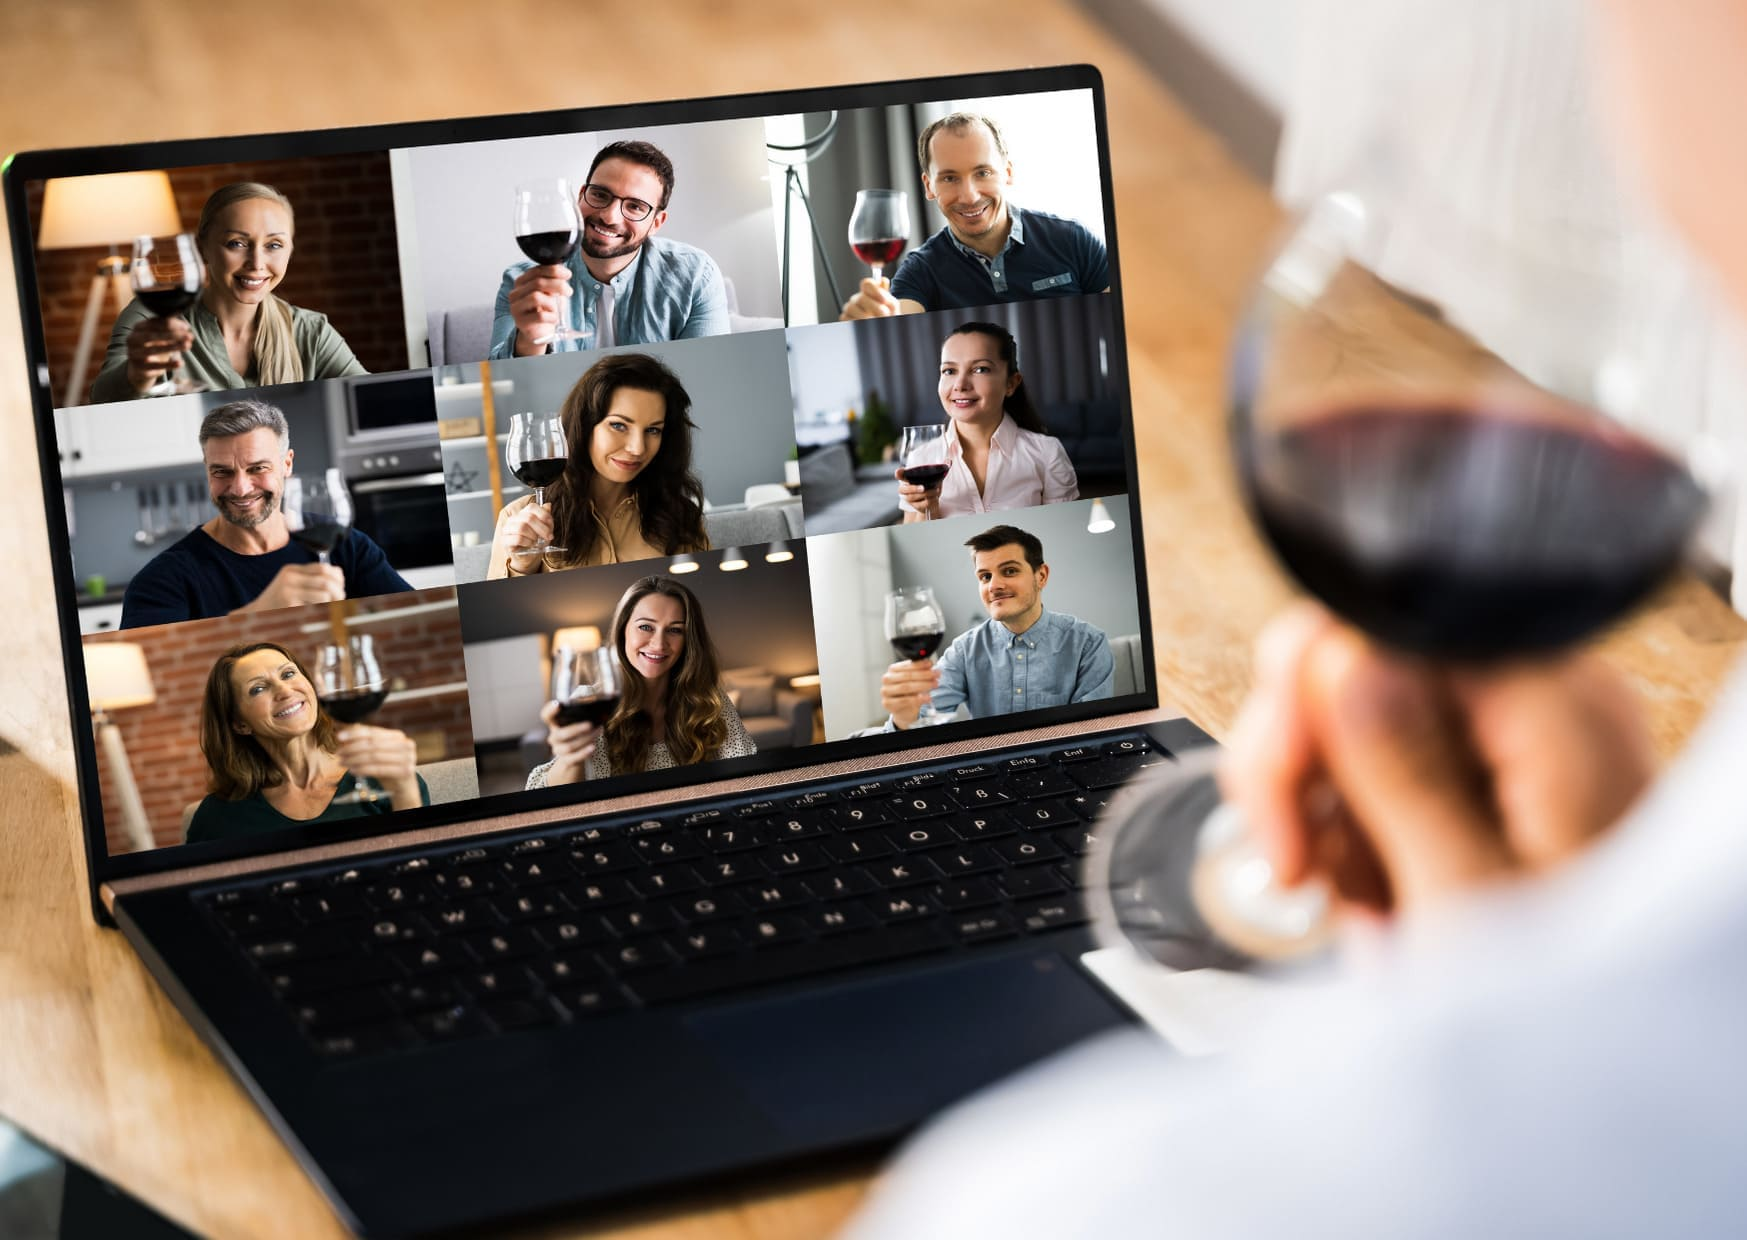 Remote wine tasting through a computer screen with several people